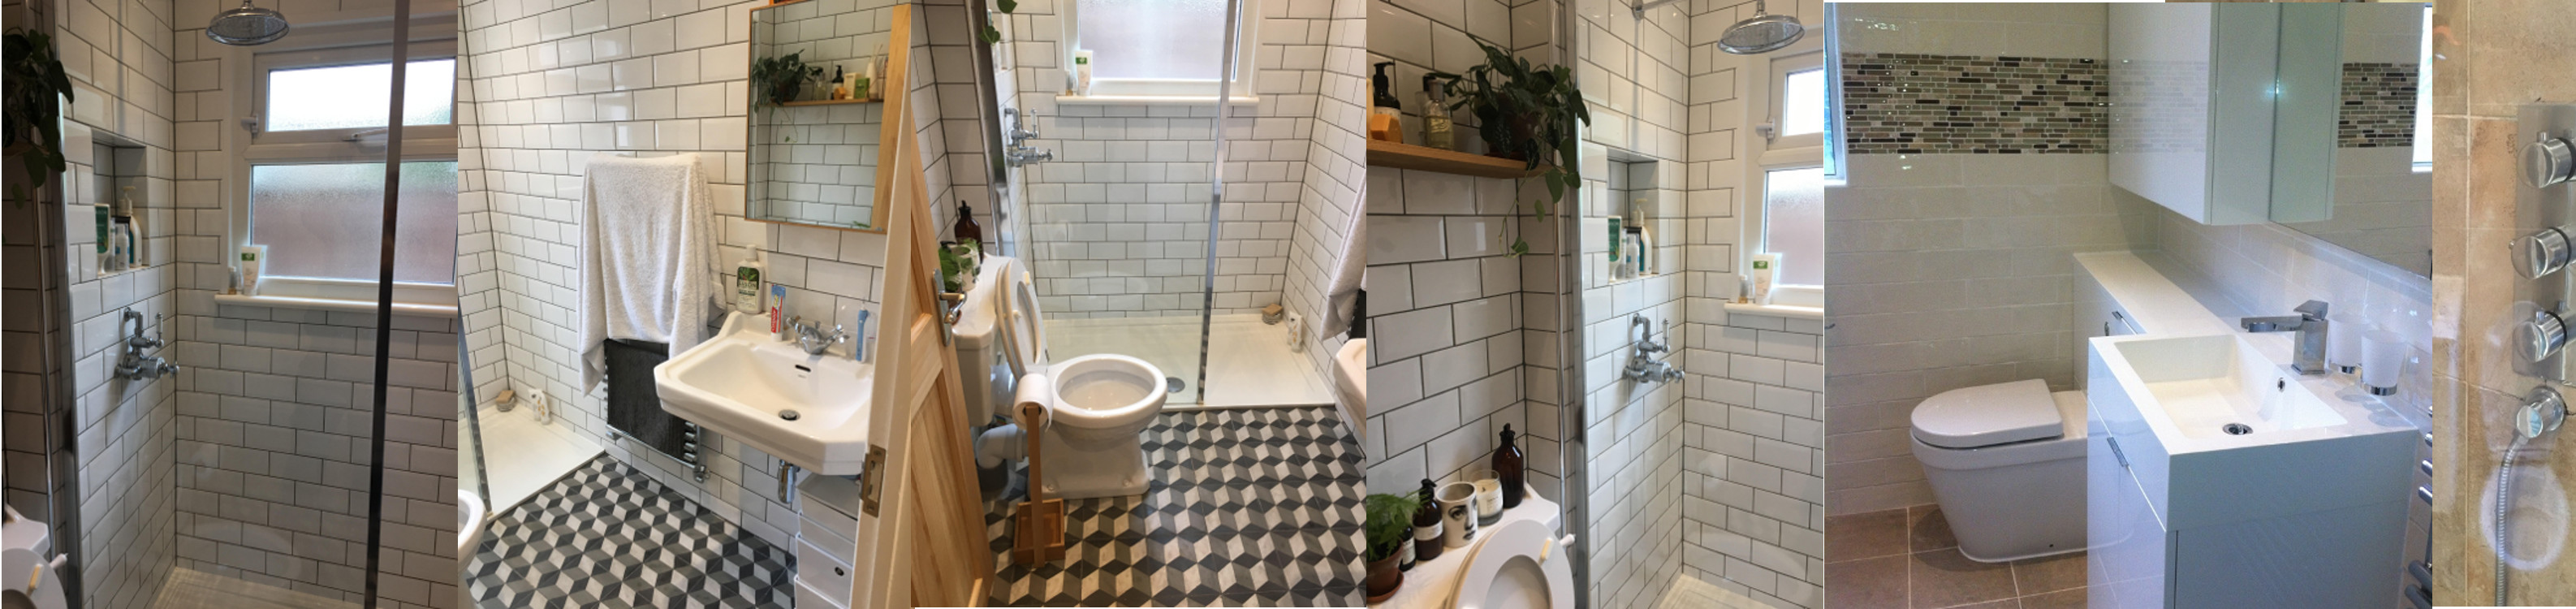 OHM install new bathroom with tiles, toilets and cabinates